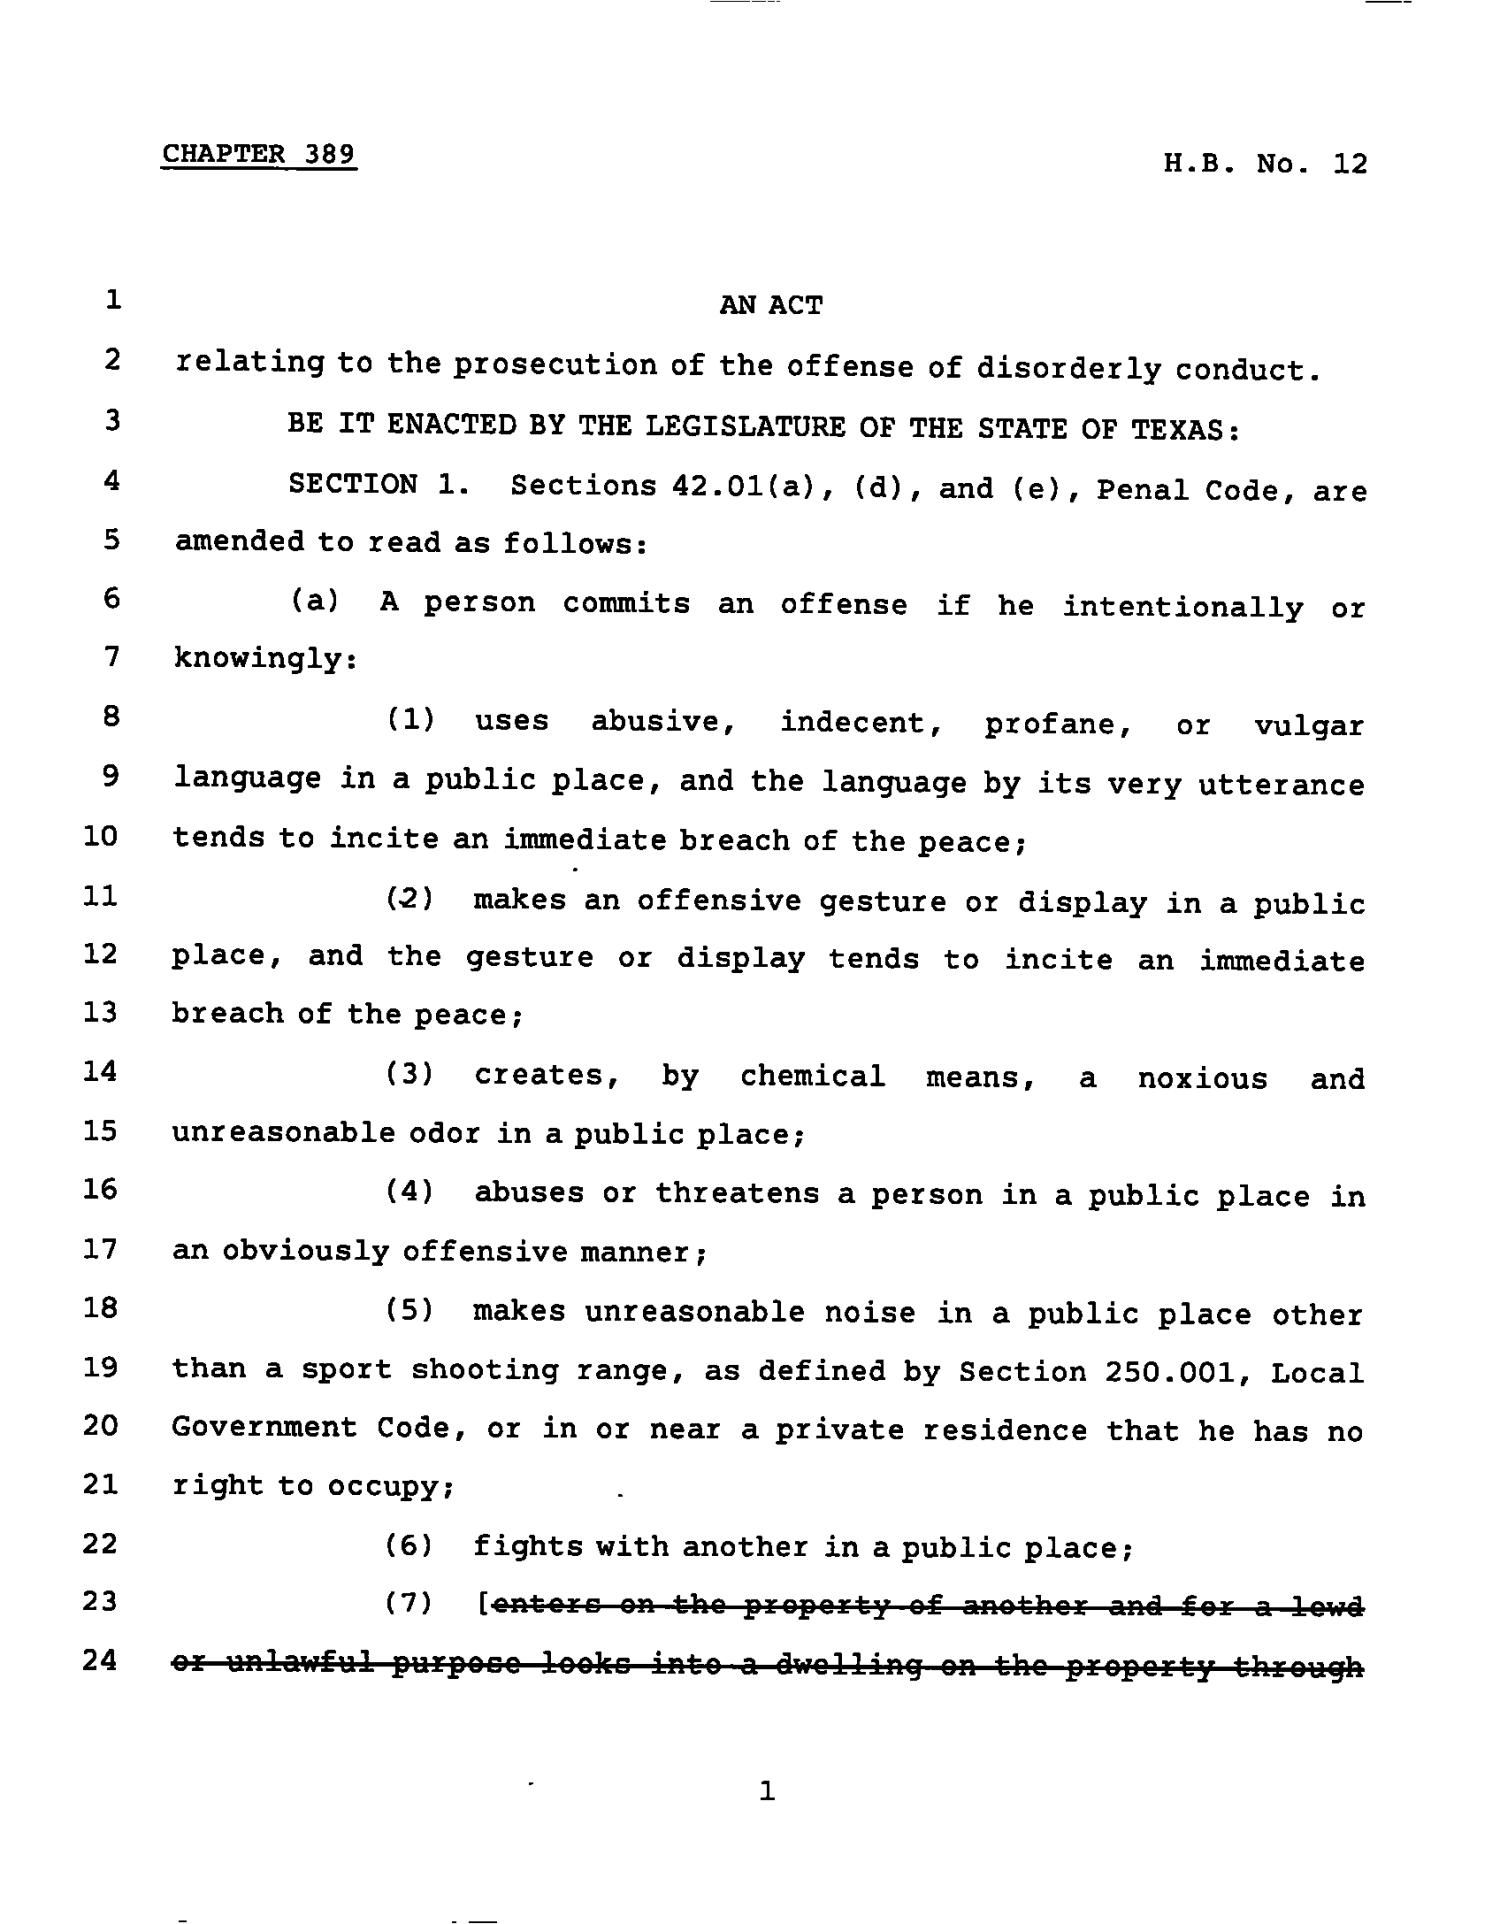 78th Texas Legislature, Regular Session, House Bill 12, Chapter 389                                                                                                      [Sequence #]: 1 of 4